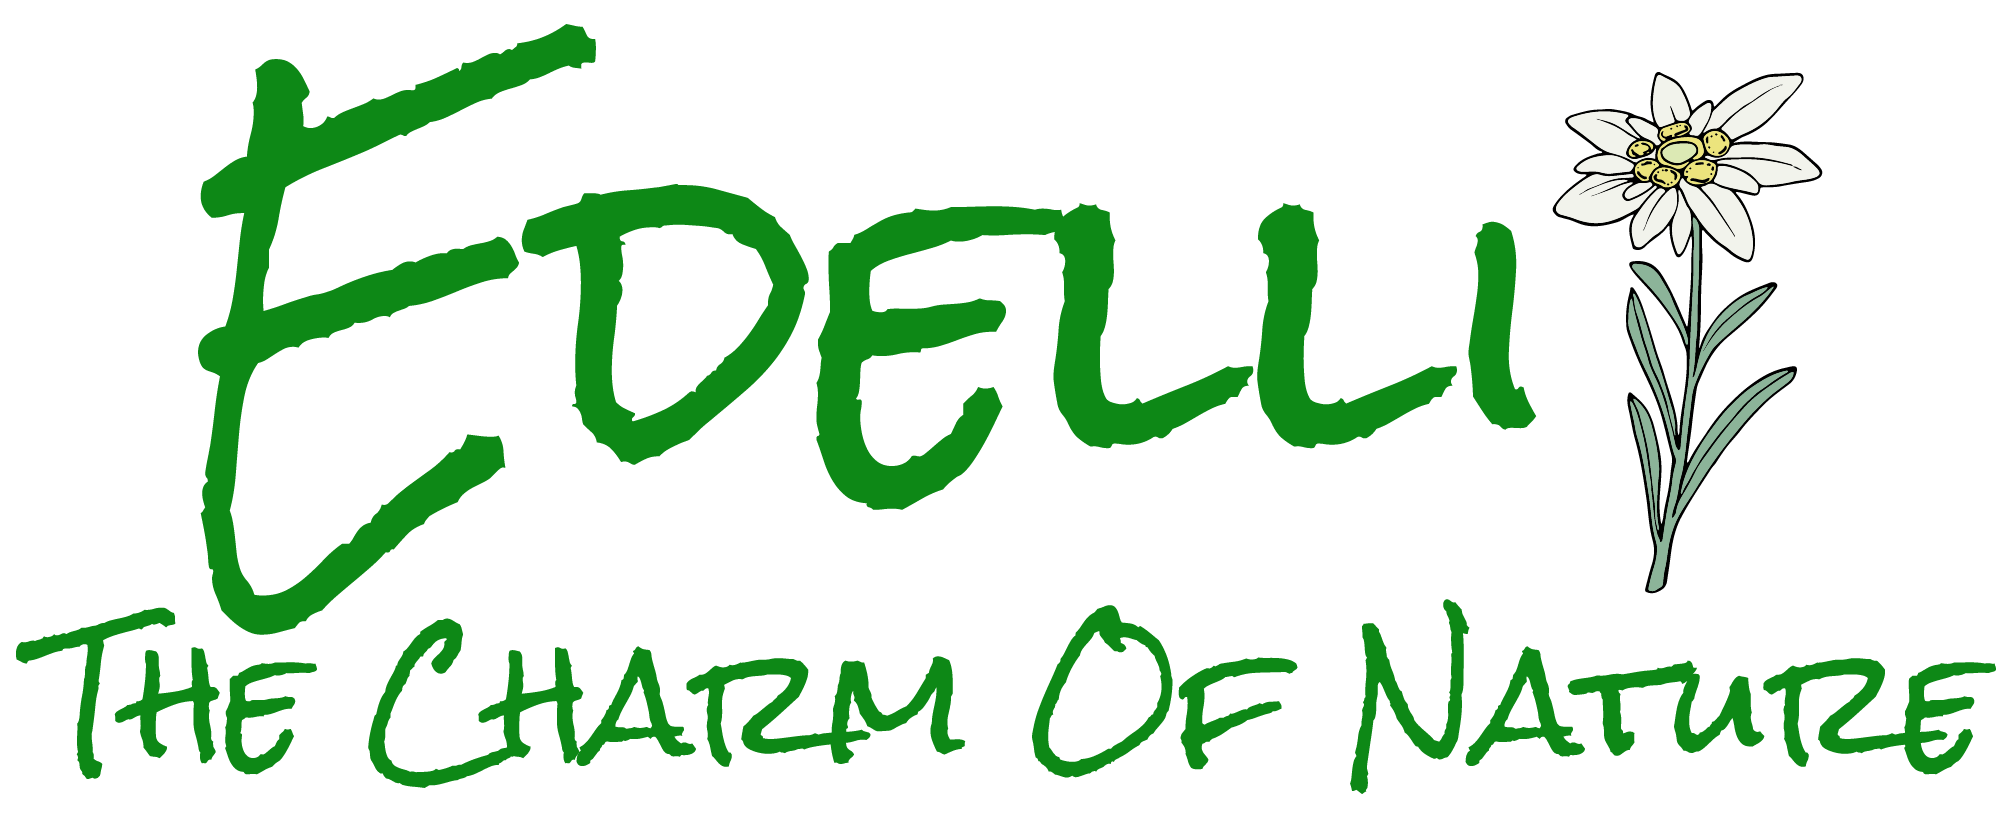 Edelli.ch The Charm Of Nature!-Aroma Essential Oils & Ayurvedic Herbal Products